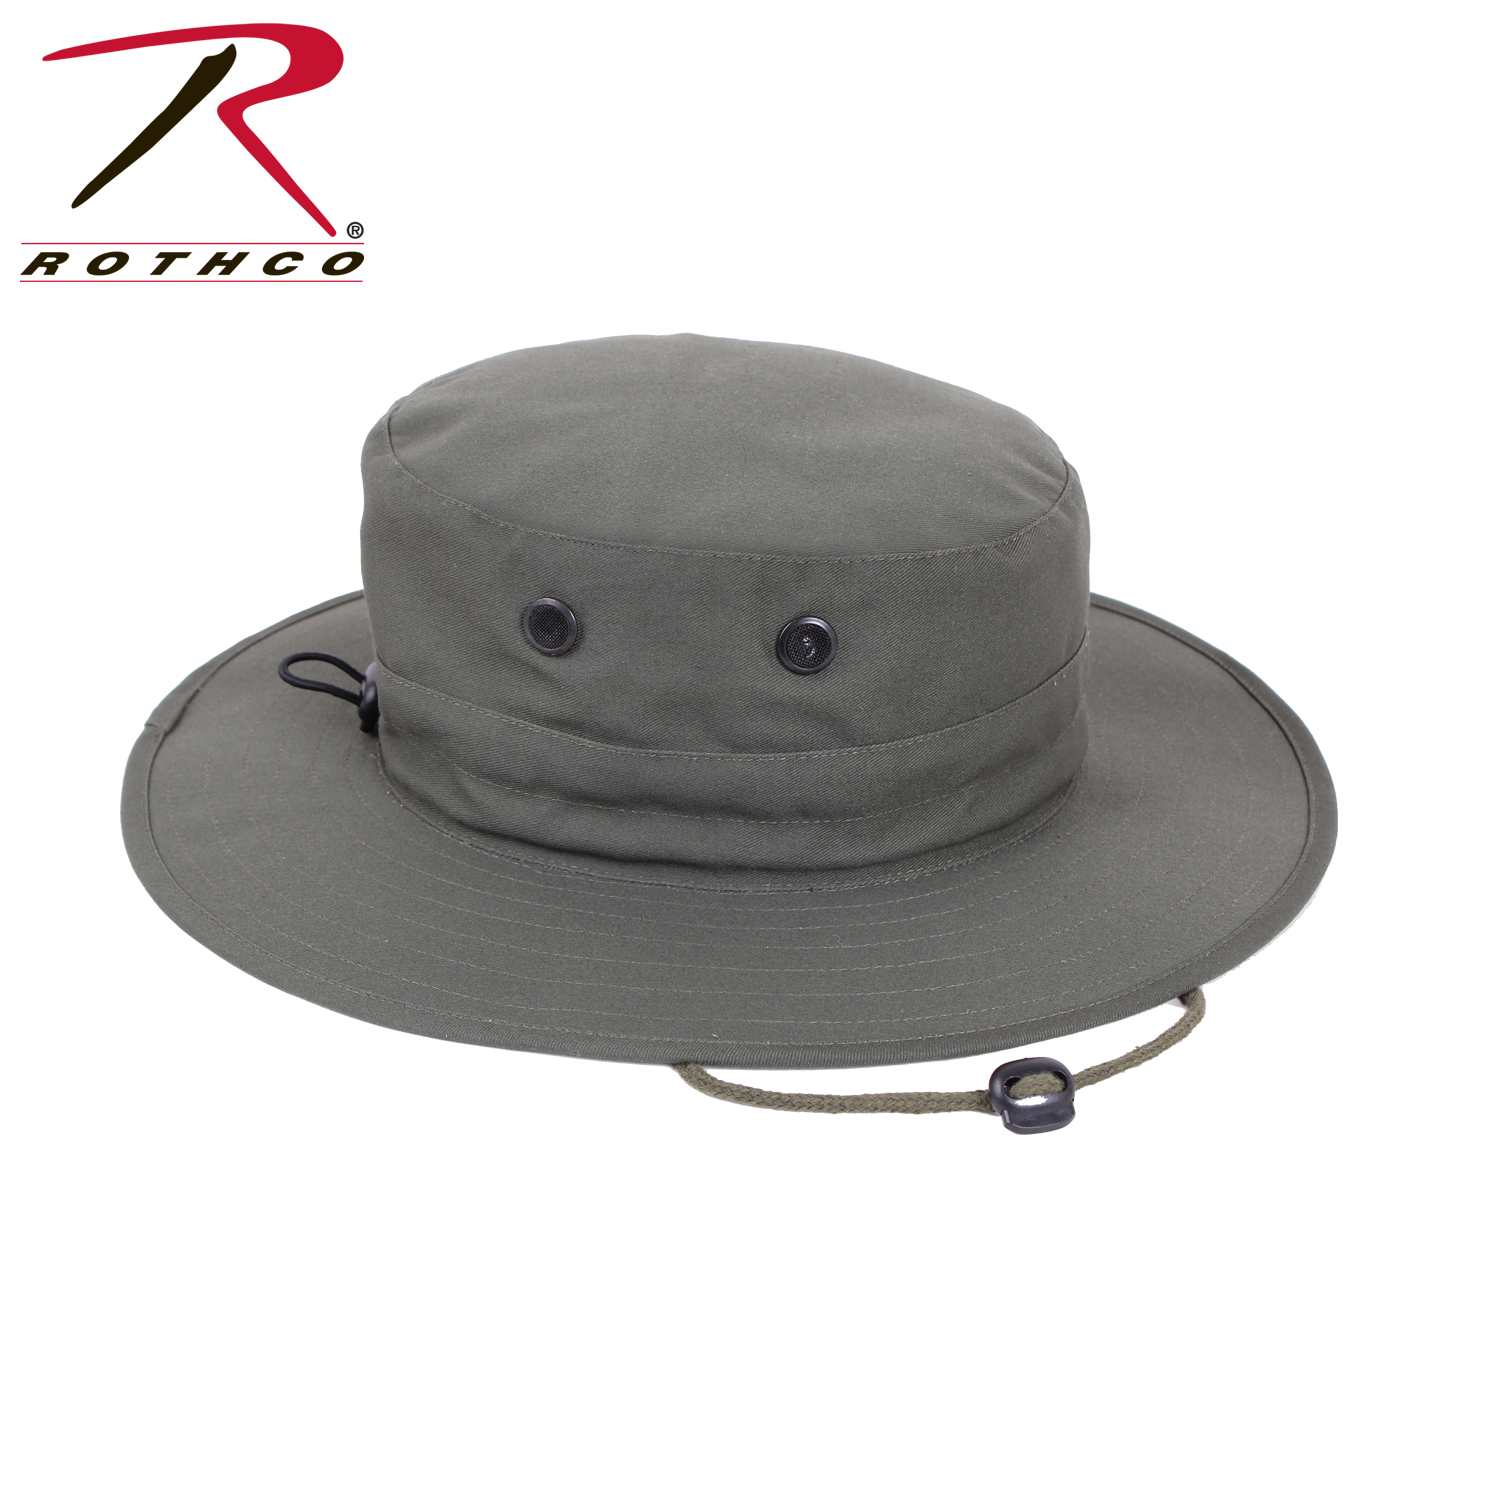 Rothco 52555 52559 52556 52557 52558 Adjustable Boonie Hat  56893351821